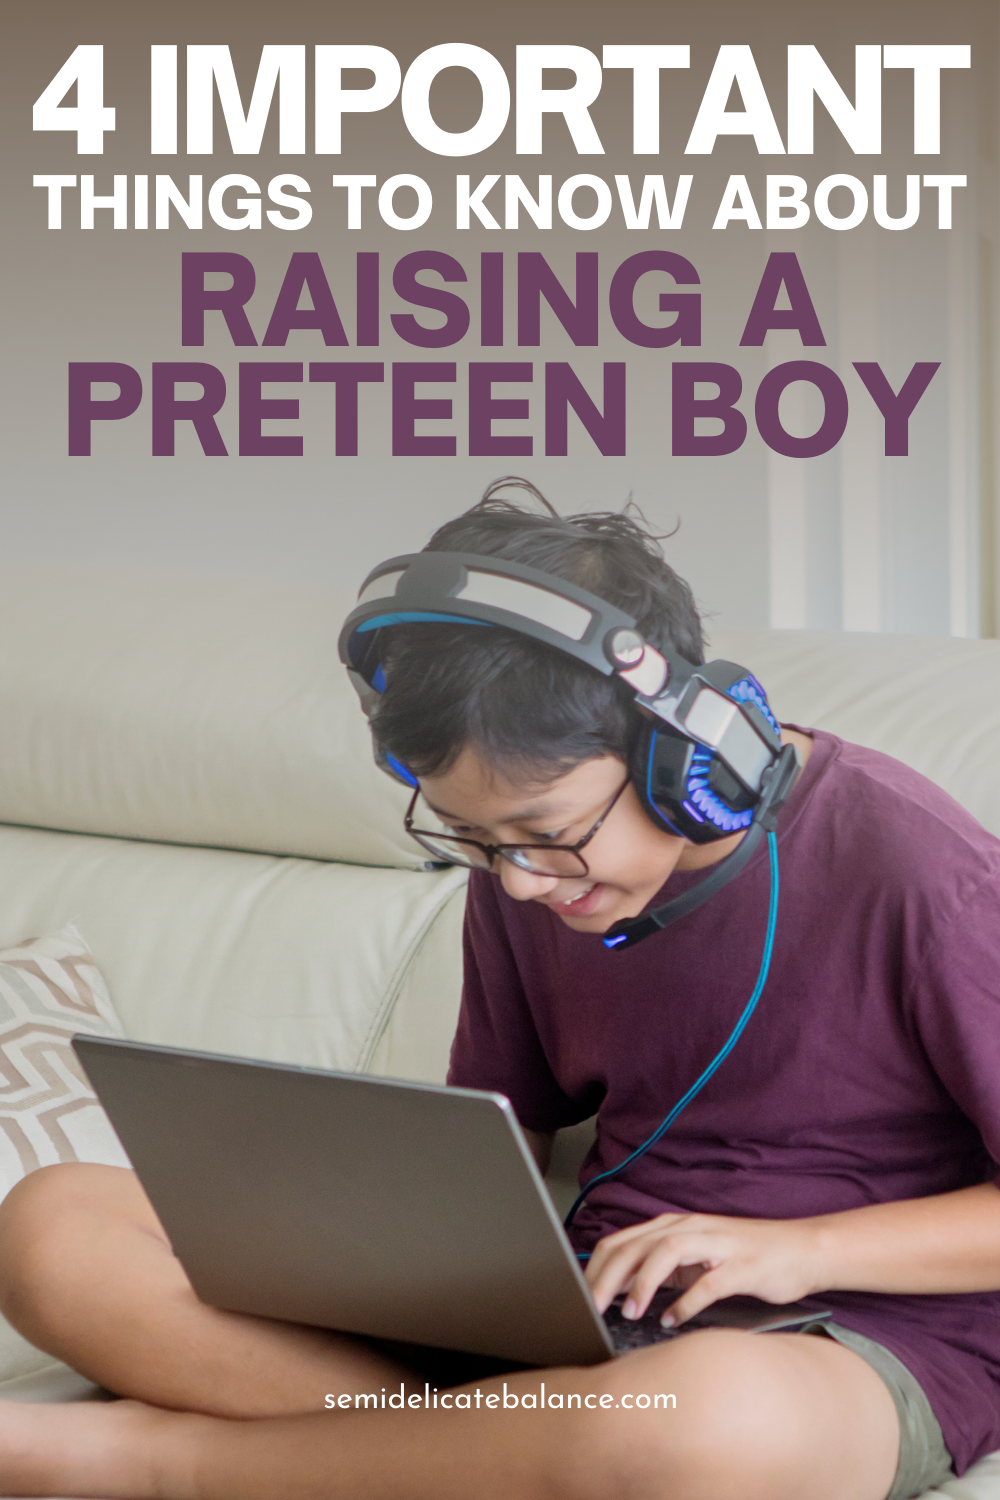 4 Important Things to Know About Raising A Preteen Son